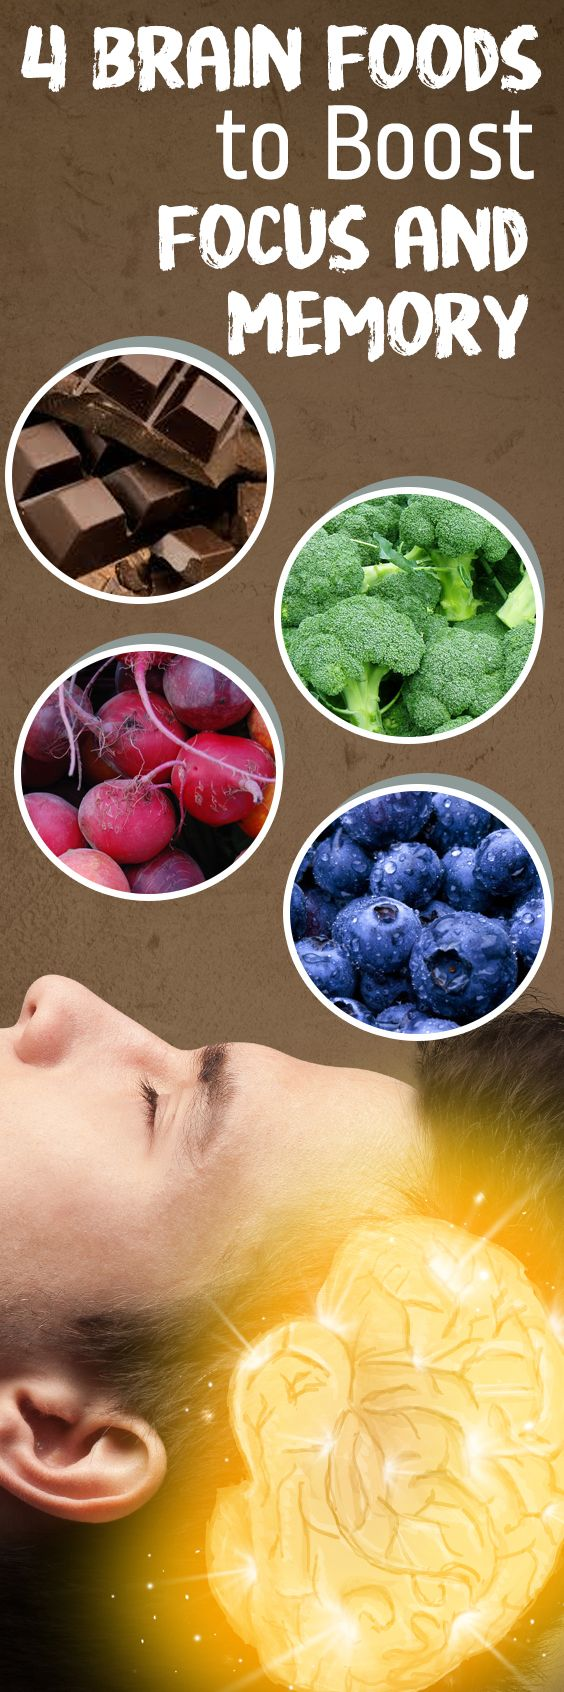 The food you take in has a strong effect on your body as well as your brain which enables you to focus and keep memories. Brain foods have to be rich in antioxidants, good fats, vitamins and minerals, which provide energy and help to protect your brain from diseases which may cause memory problems andRead More